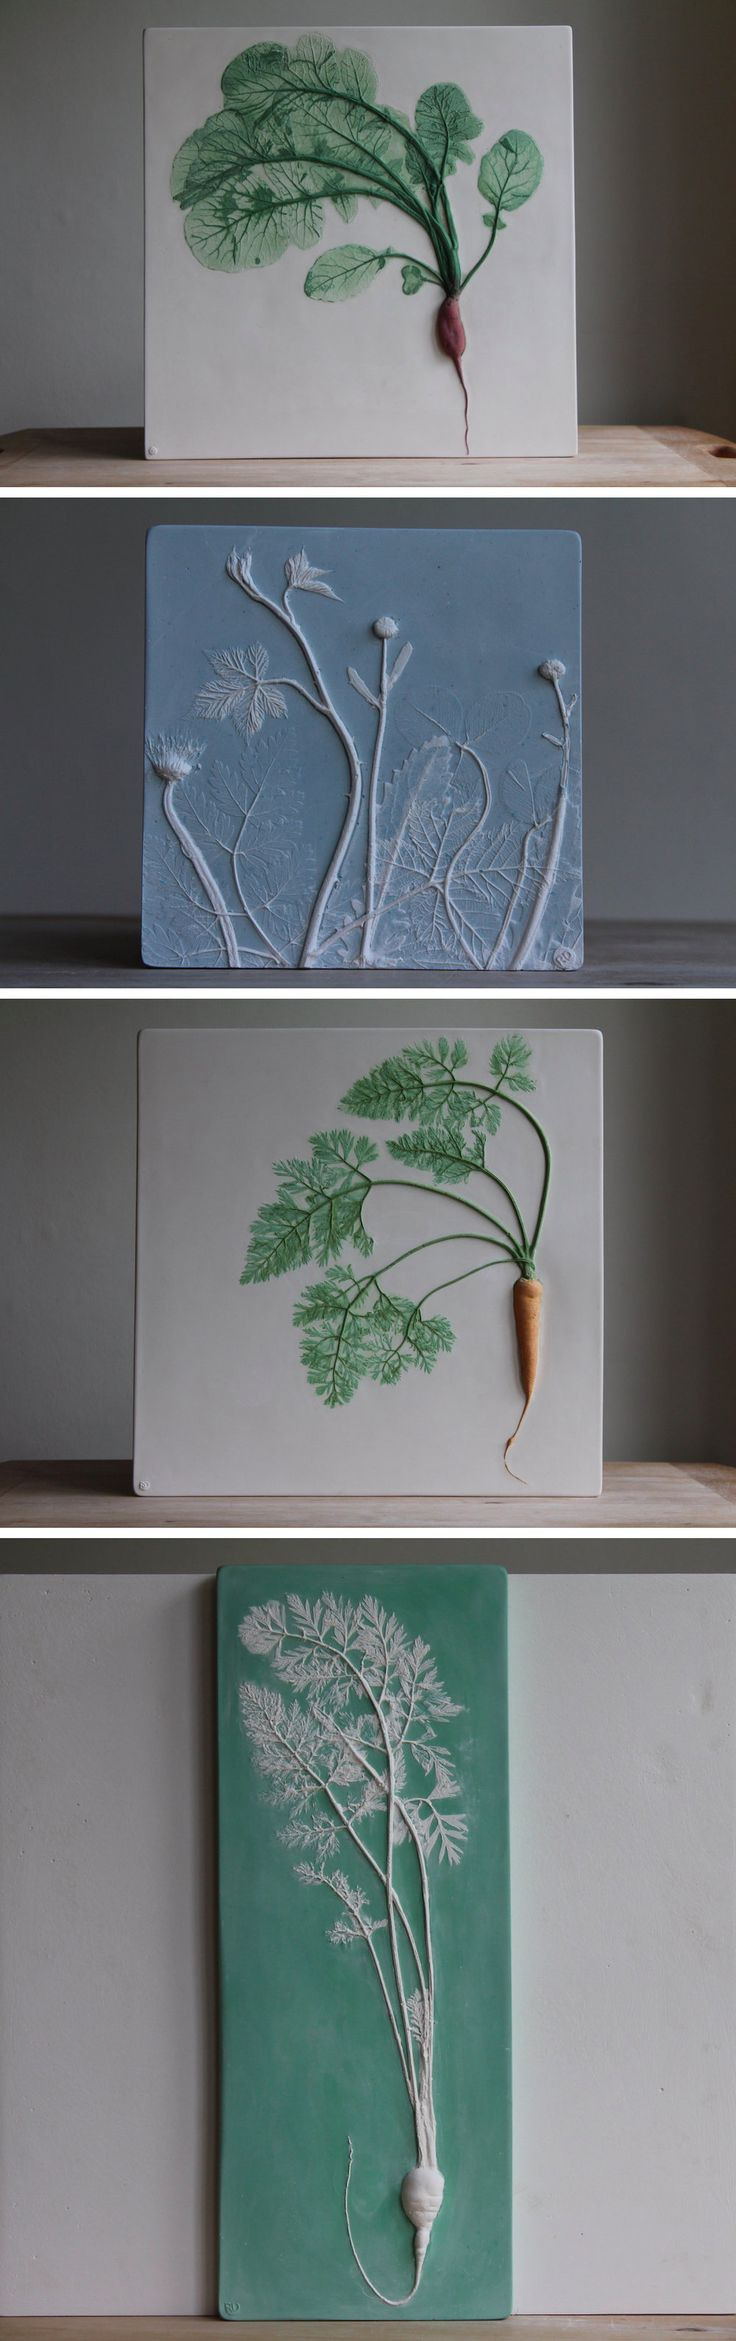 New Plaster Cast Tiles That Immortalize Flowers and Veggies by Rachel Dein || jadi inget awal2 kuliah Nirmana 3D di FSRD itebe (._.)                                                                                                                                                     More